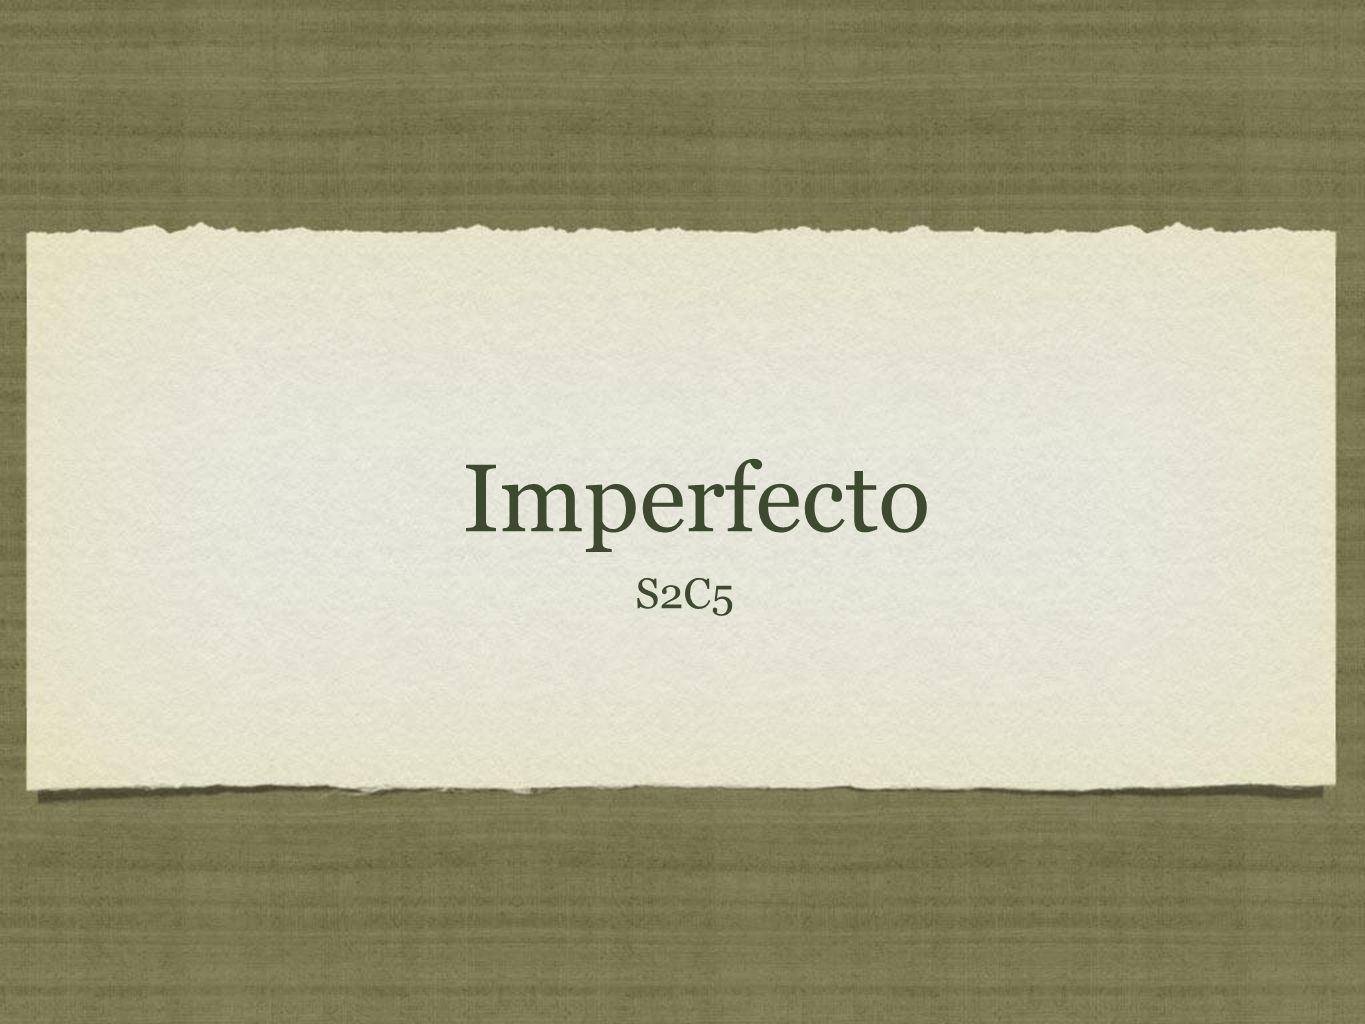 Imperfecto S2C5